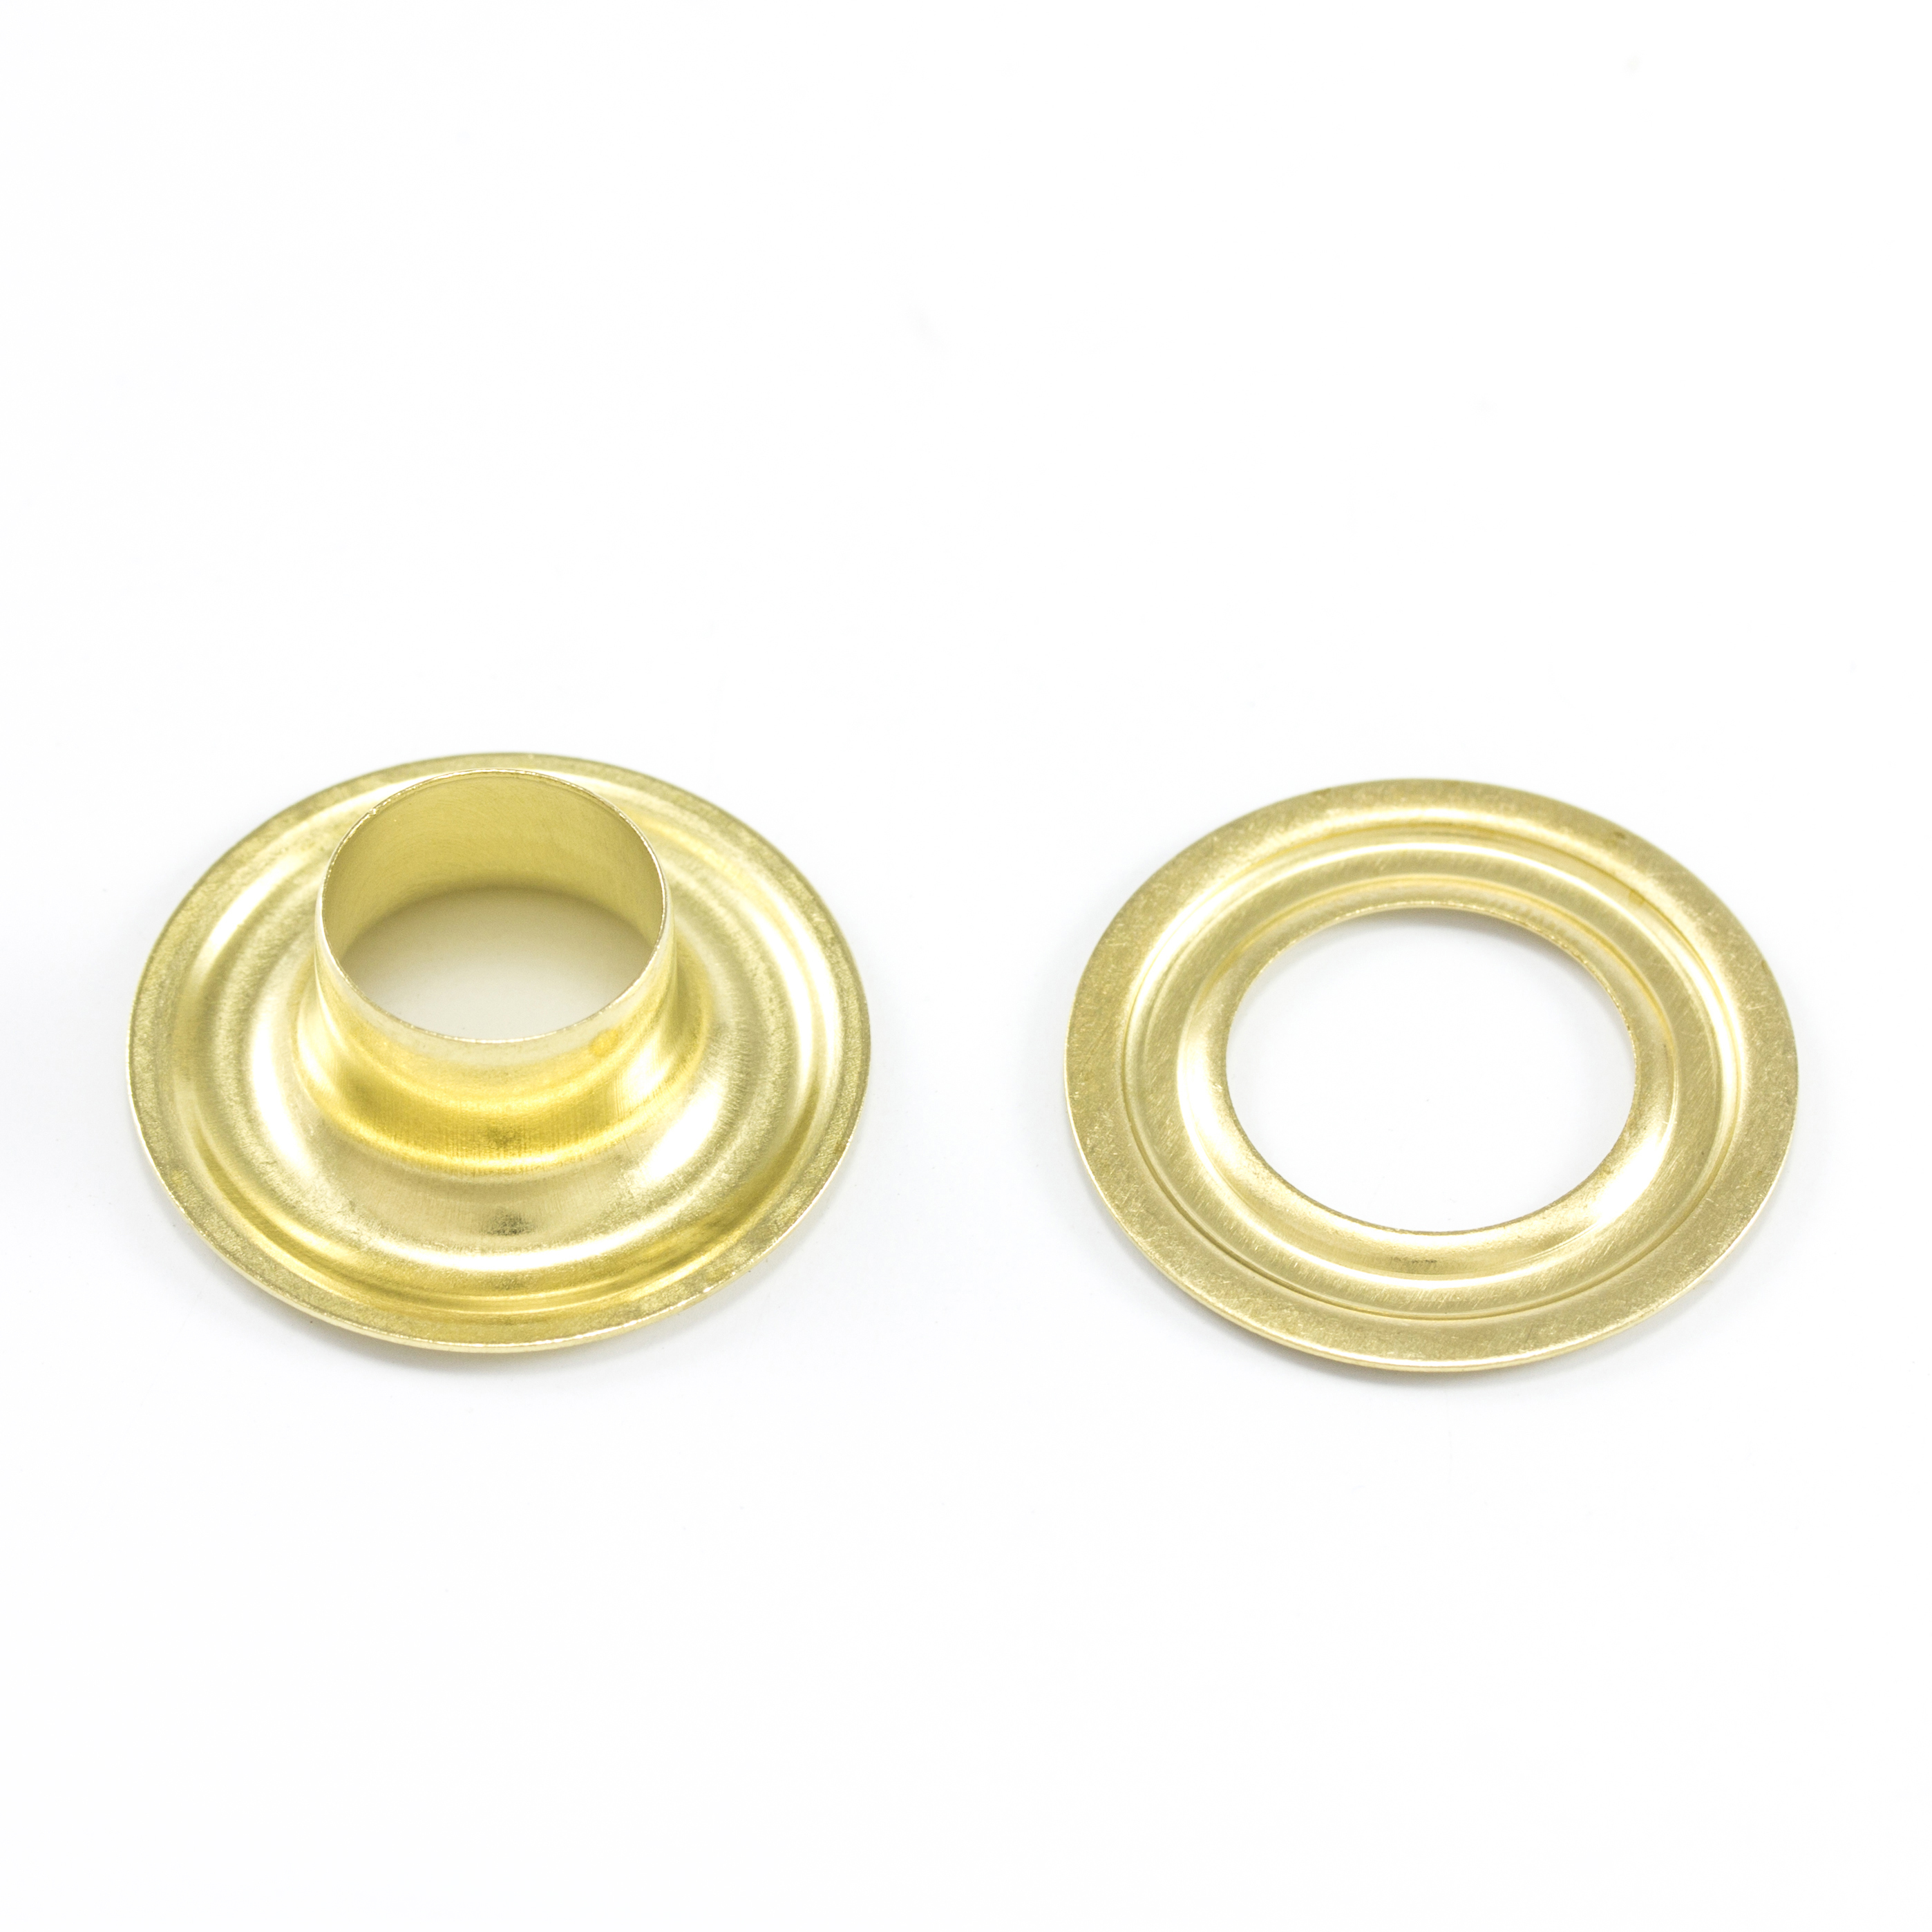 DOT Grommet with Plain Washer #3 Brass 7/16